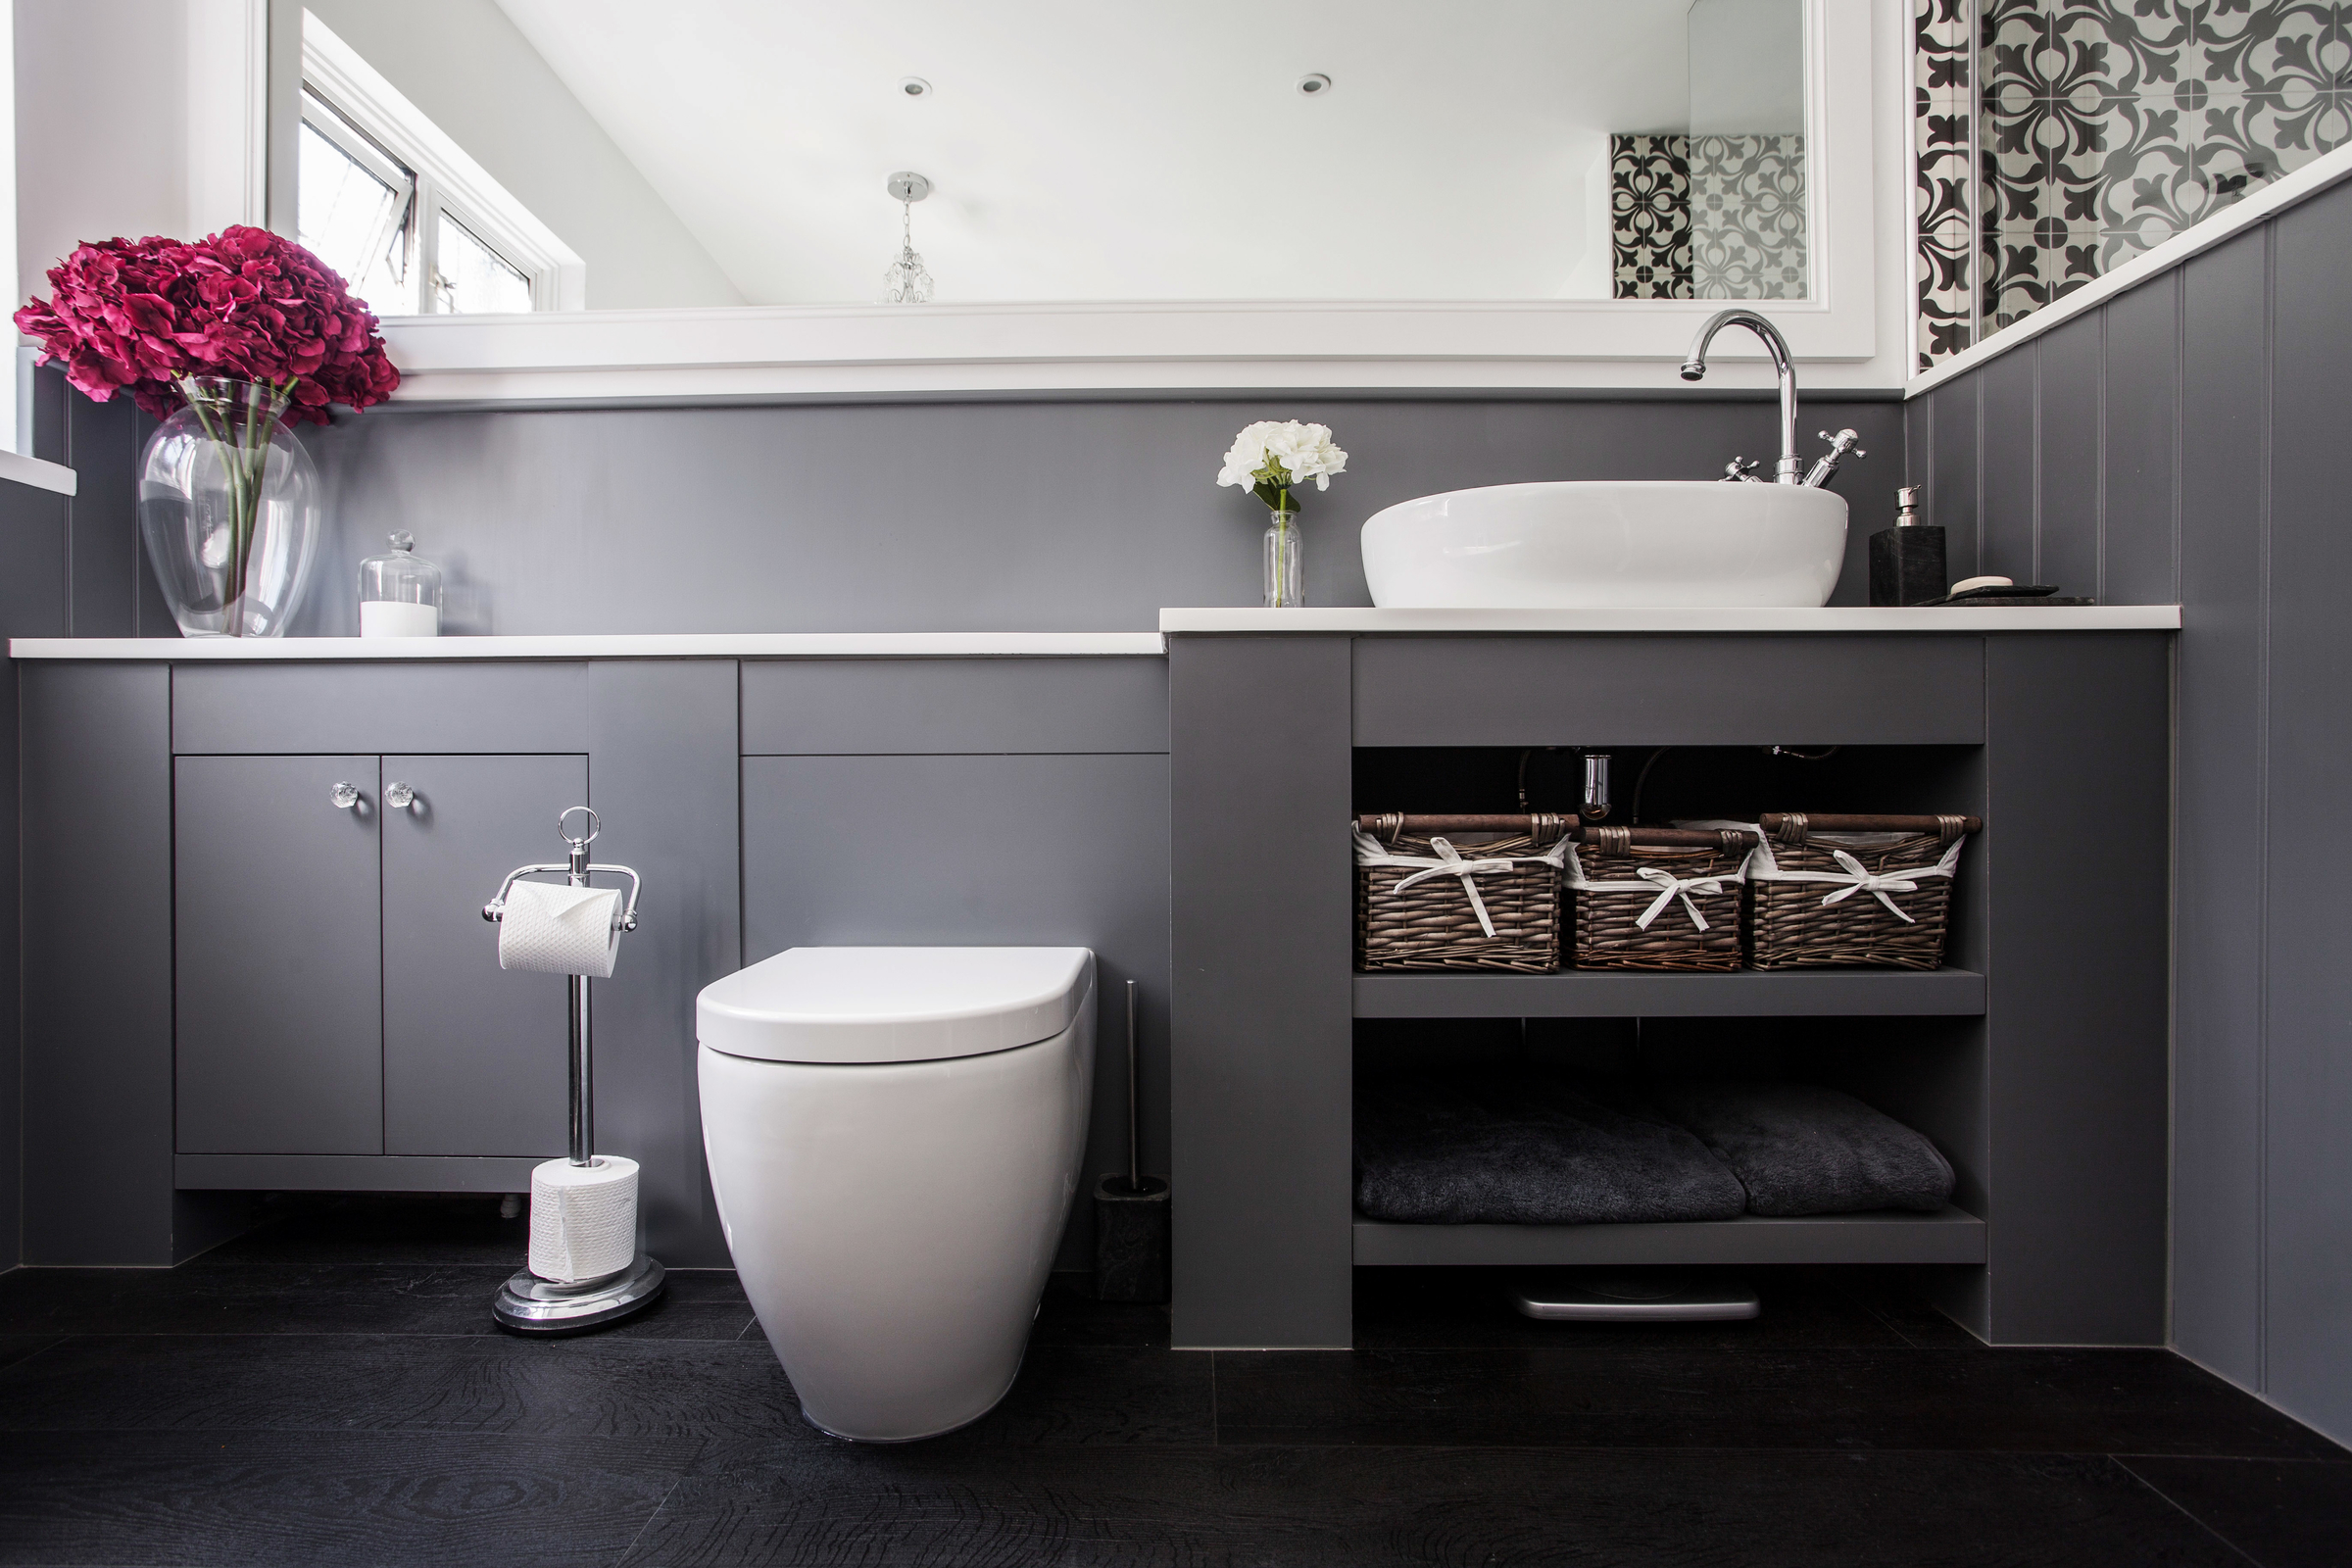 Boutique hotel bathroom burlanes interiors kent and essex for What do hotels use to clean bathrooms